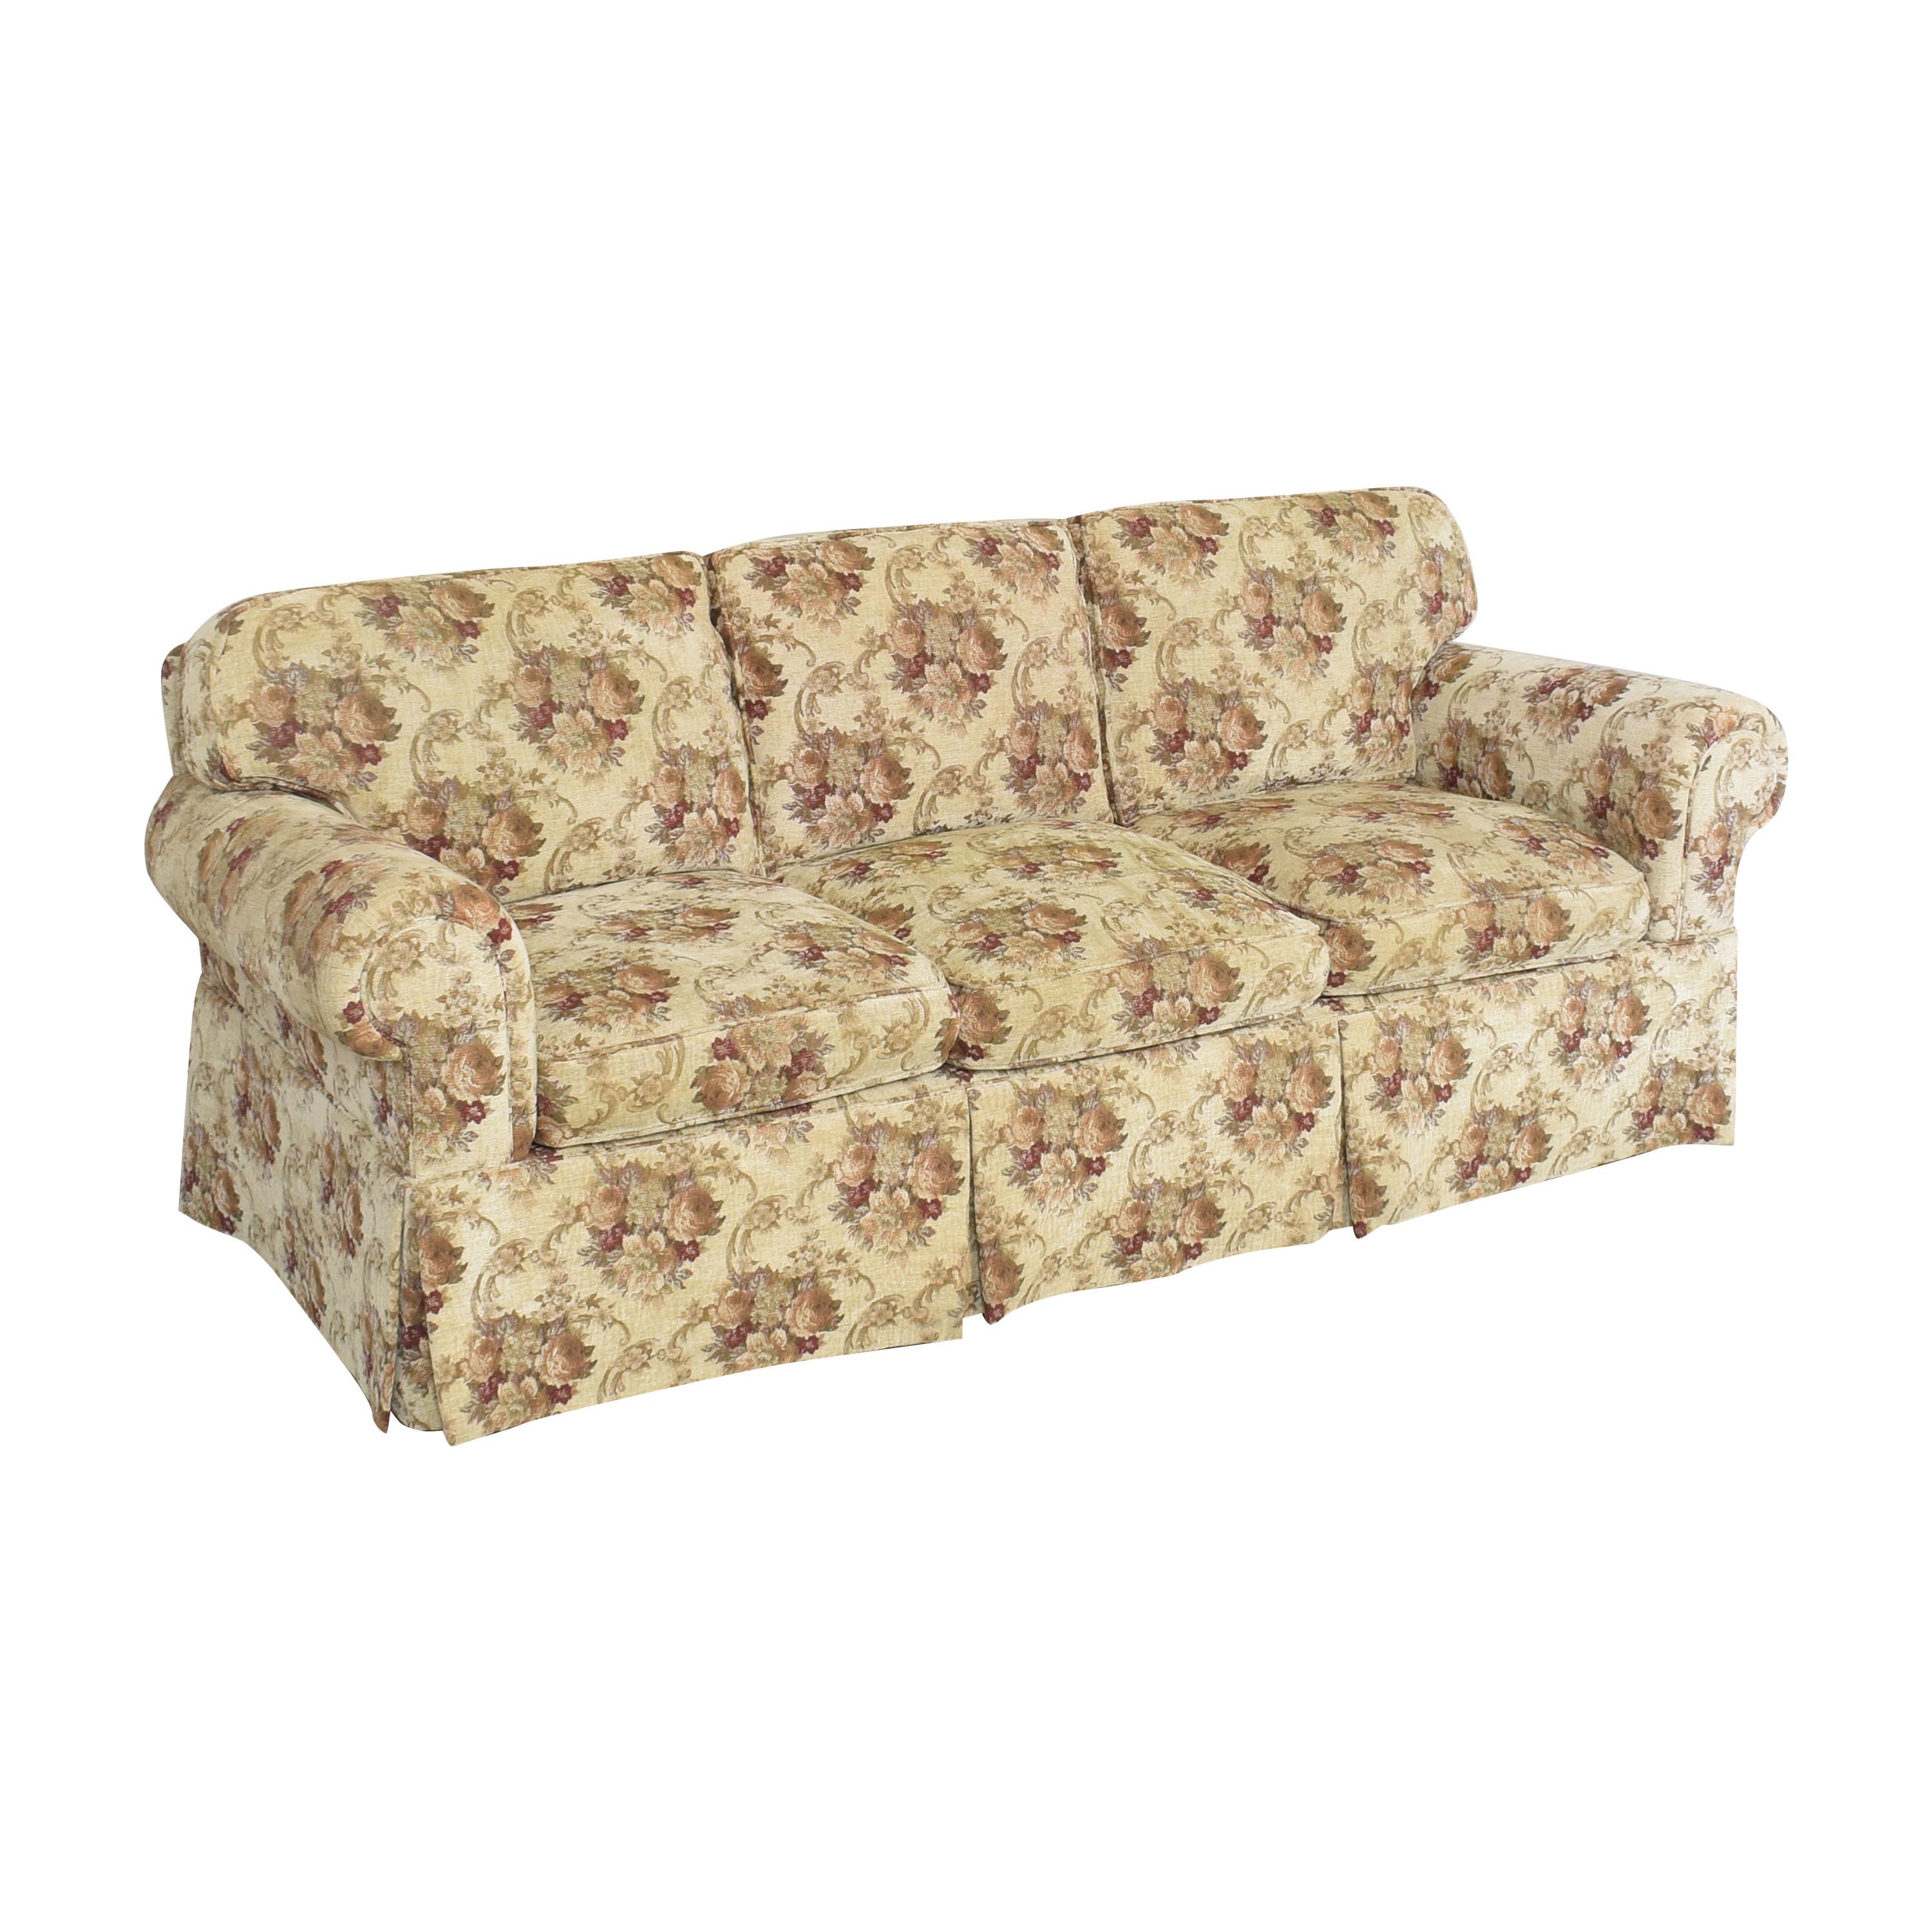 Stickley Furniture Stickley Skirted Sofa coupon